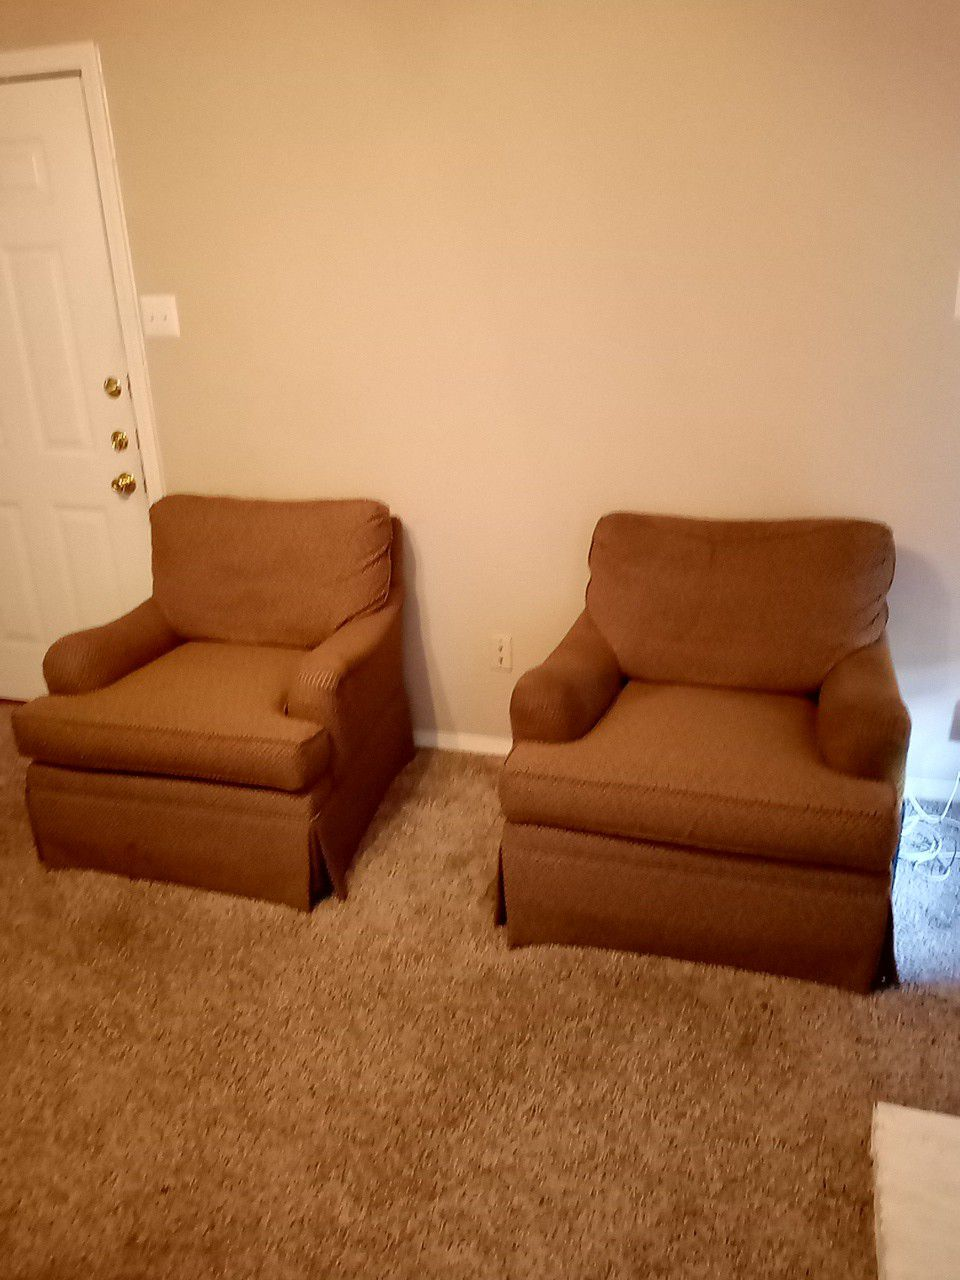 Twin sofa chairs for sale 30$ each